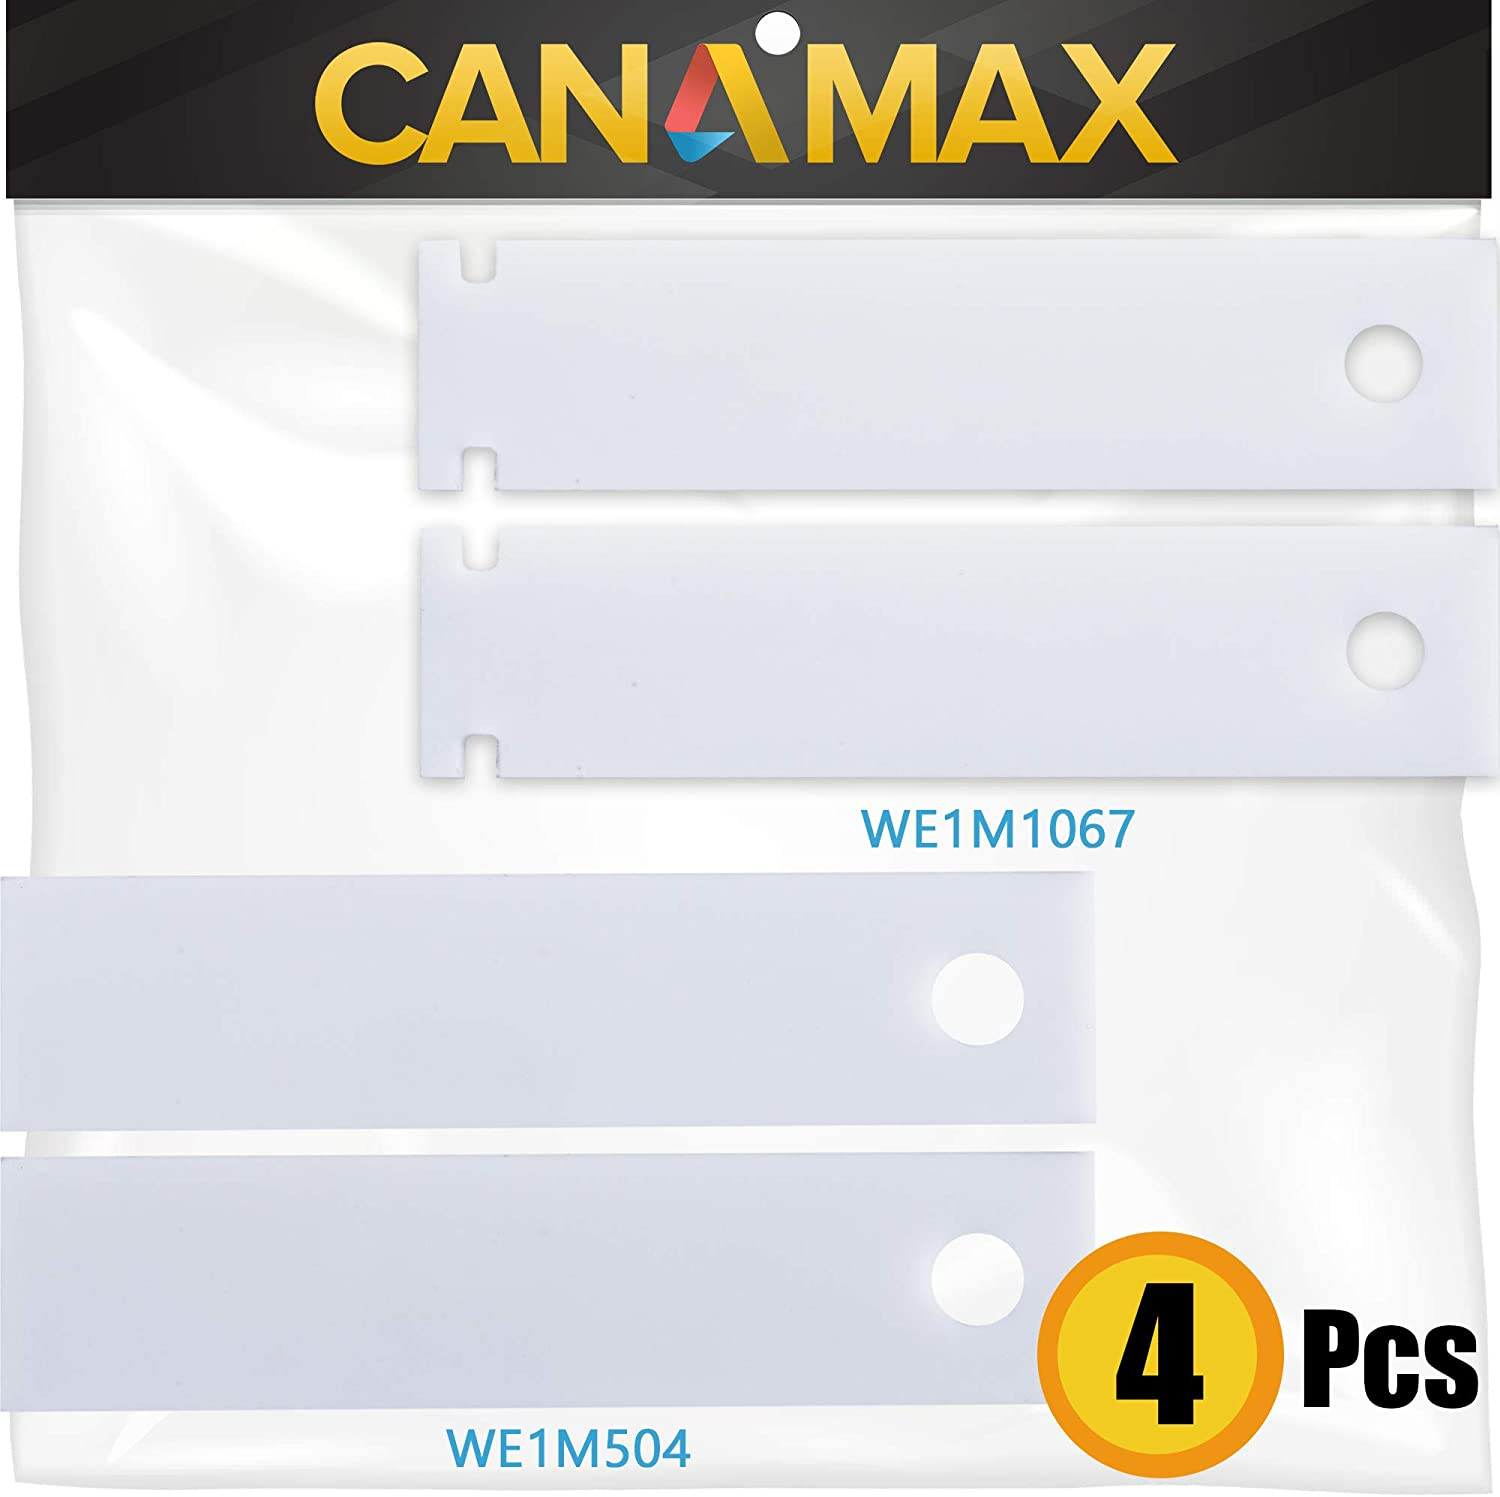 Ultra Durable WE1M504 & WE1M1067 Drum Bearing Slide White & Green Replacement Kit by Canamax - Exact fit for GE & Kenmore Dryers - PACK OF 2